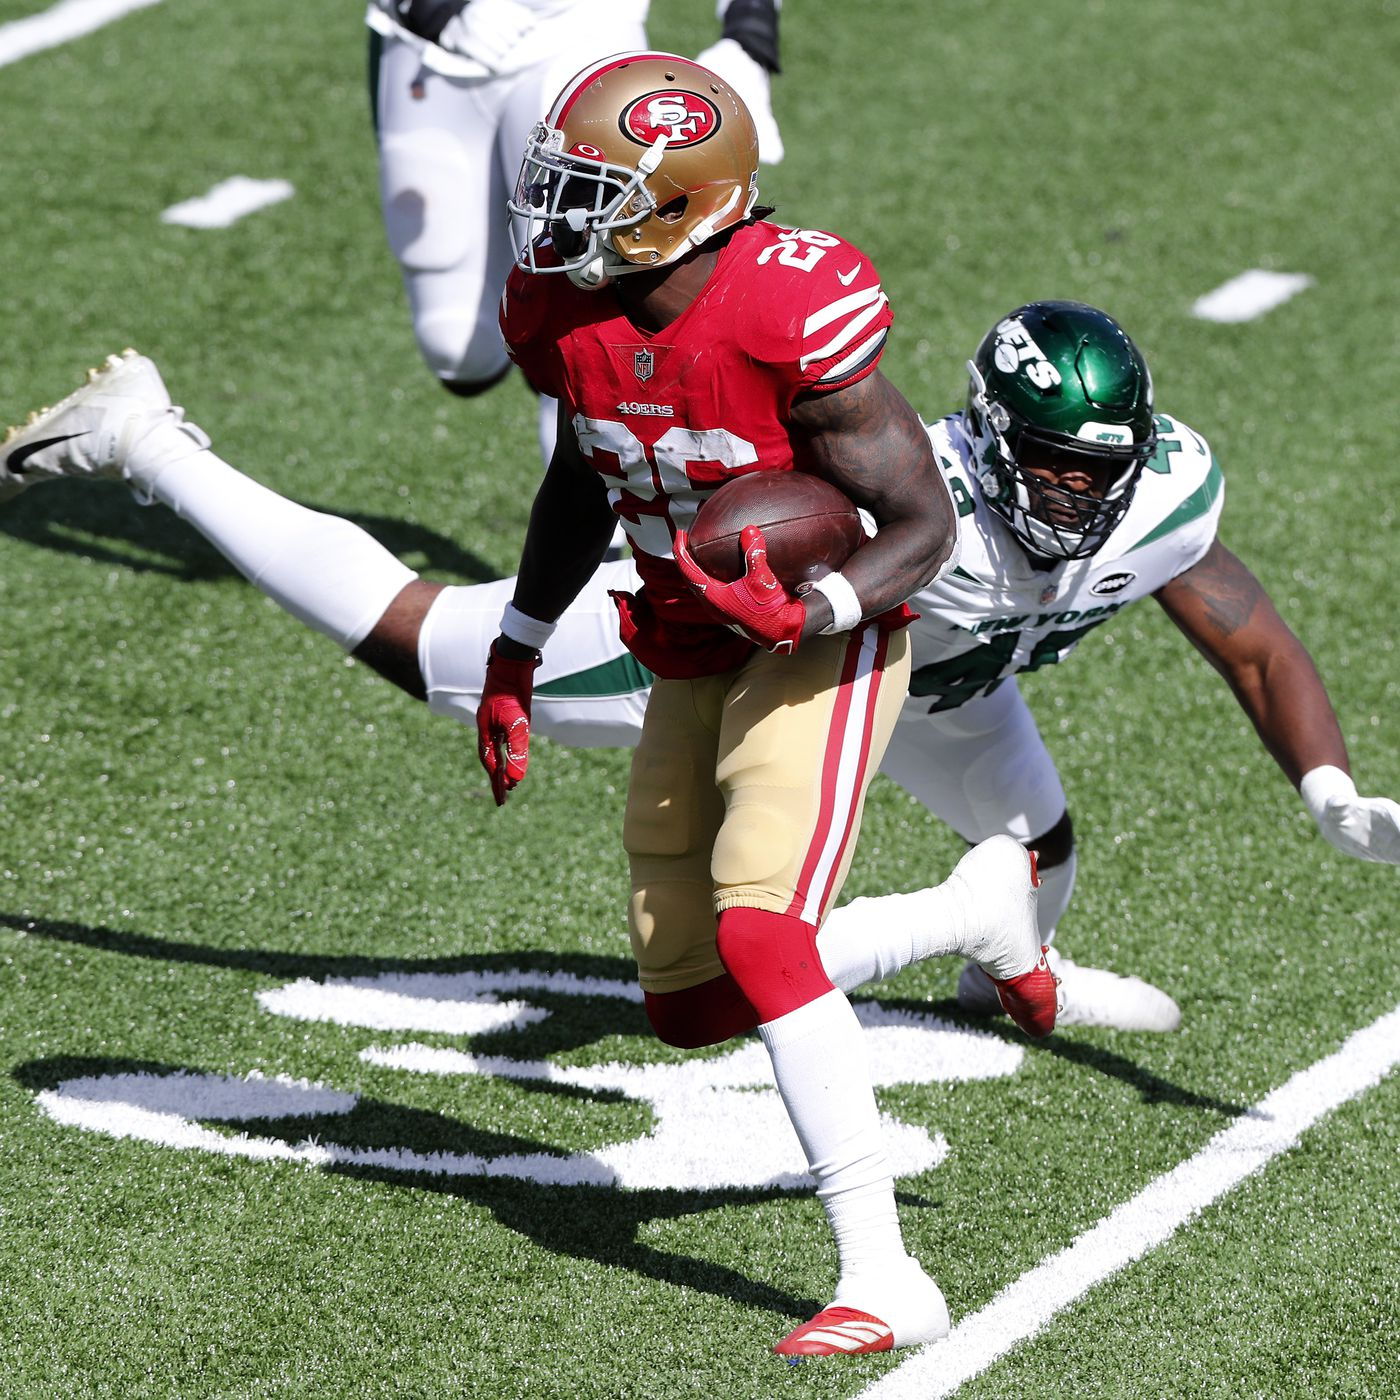 San Francisco 49ers Roster Moves Tevin Coleman K Waun Williams Are Back Ward Is Questionable For Week 8 Showdown Against Seahawks Niners Nation